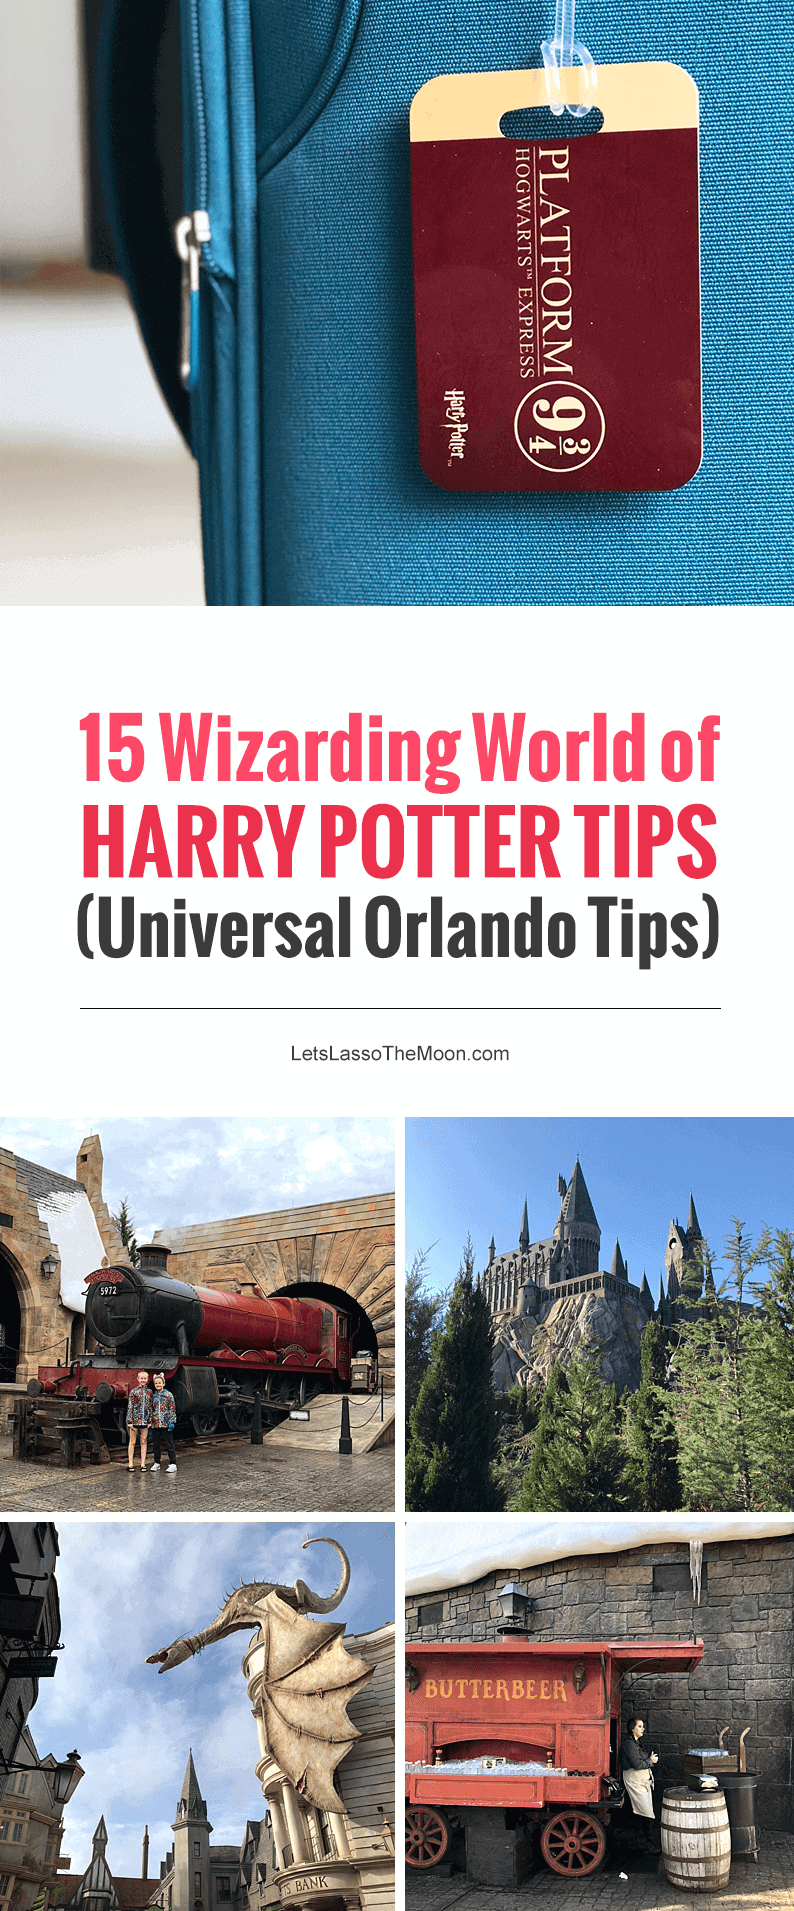 Wizarding World of Harry Potter Tips - Universal Orlando Tips: Should you get the Universal Express Pass? Compare Universal hotels and more. Great mom-to-mom tips for planning your family vacation to Orlando. #HarryPotterWorld #UniversalStudios #UniversalOrlando #FamilyTravel #Orlando #Florida *Pinning this REAL parent advice for our trip! So helpful.